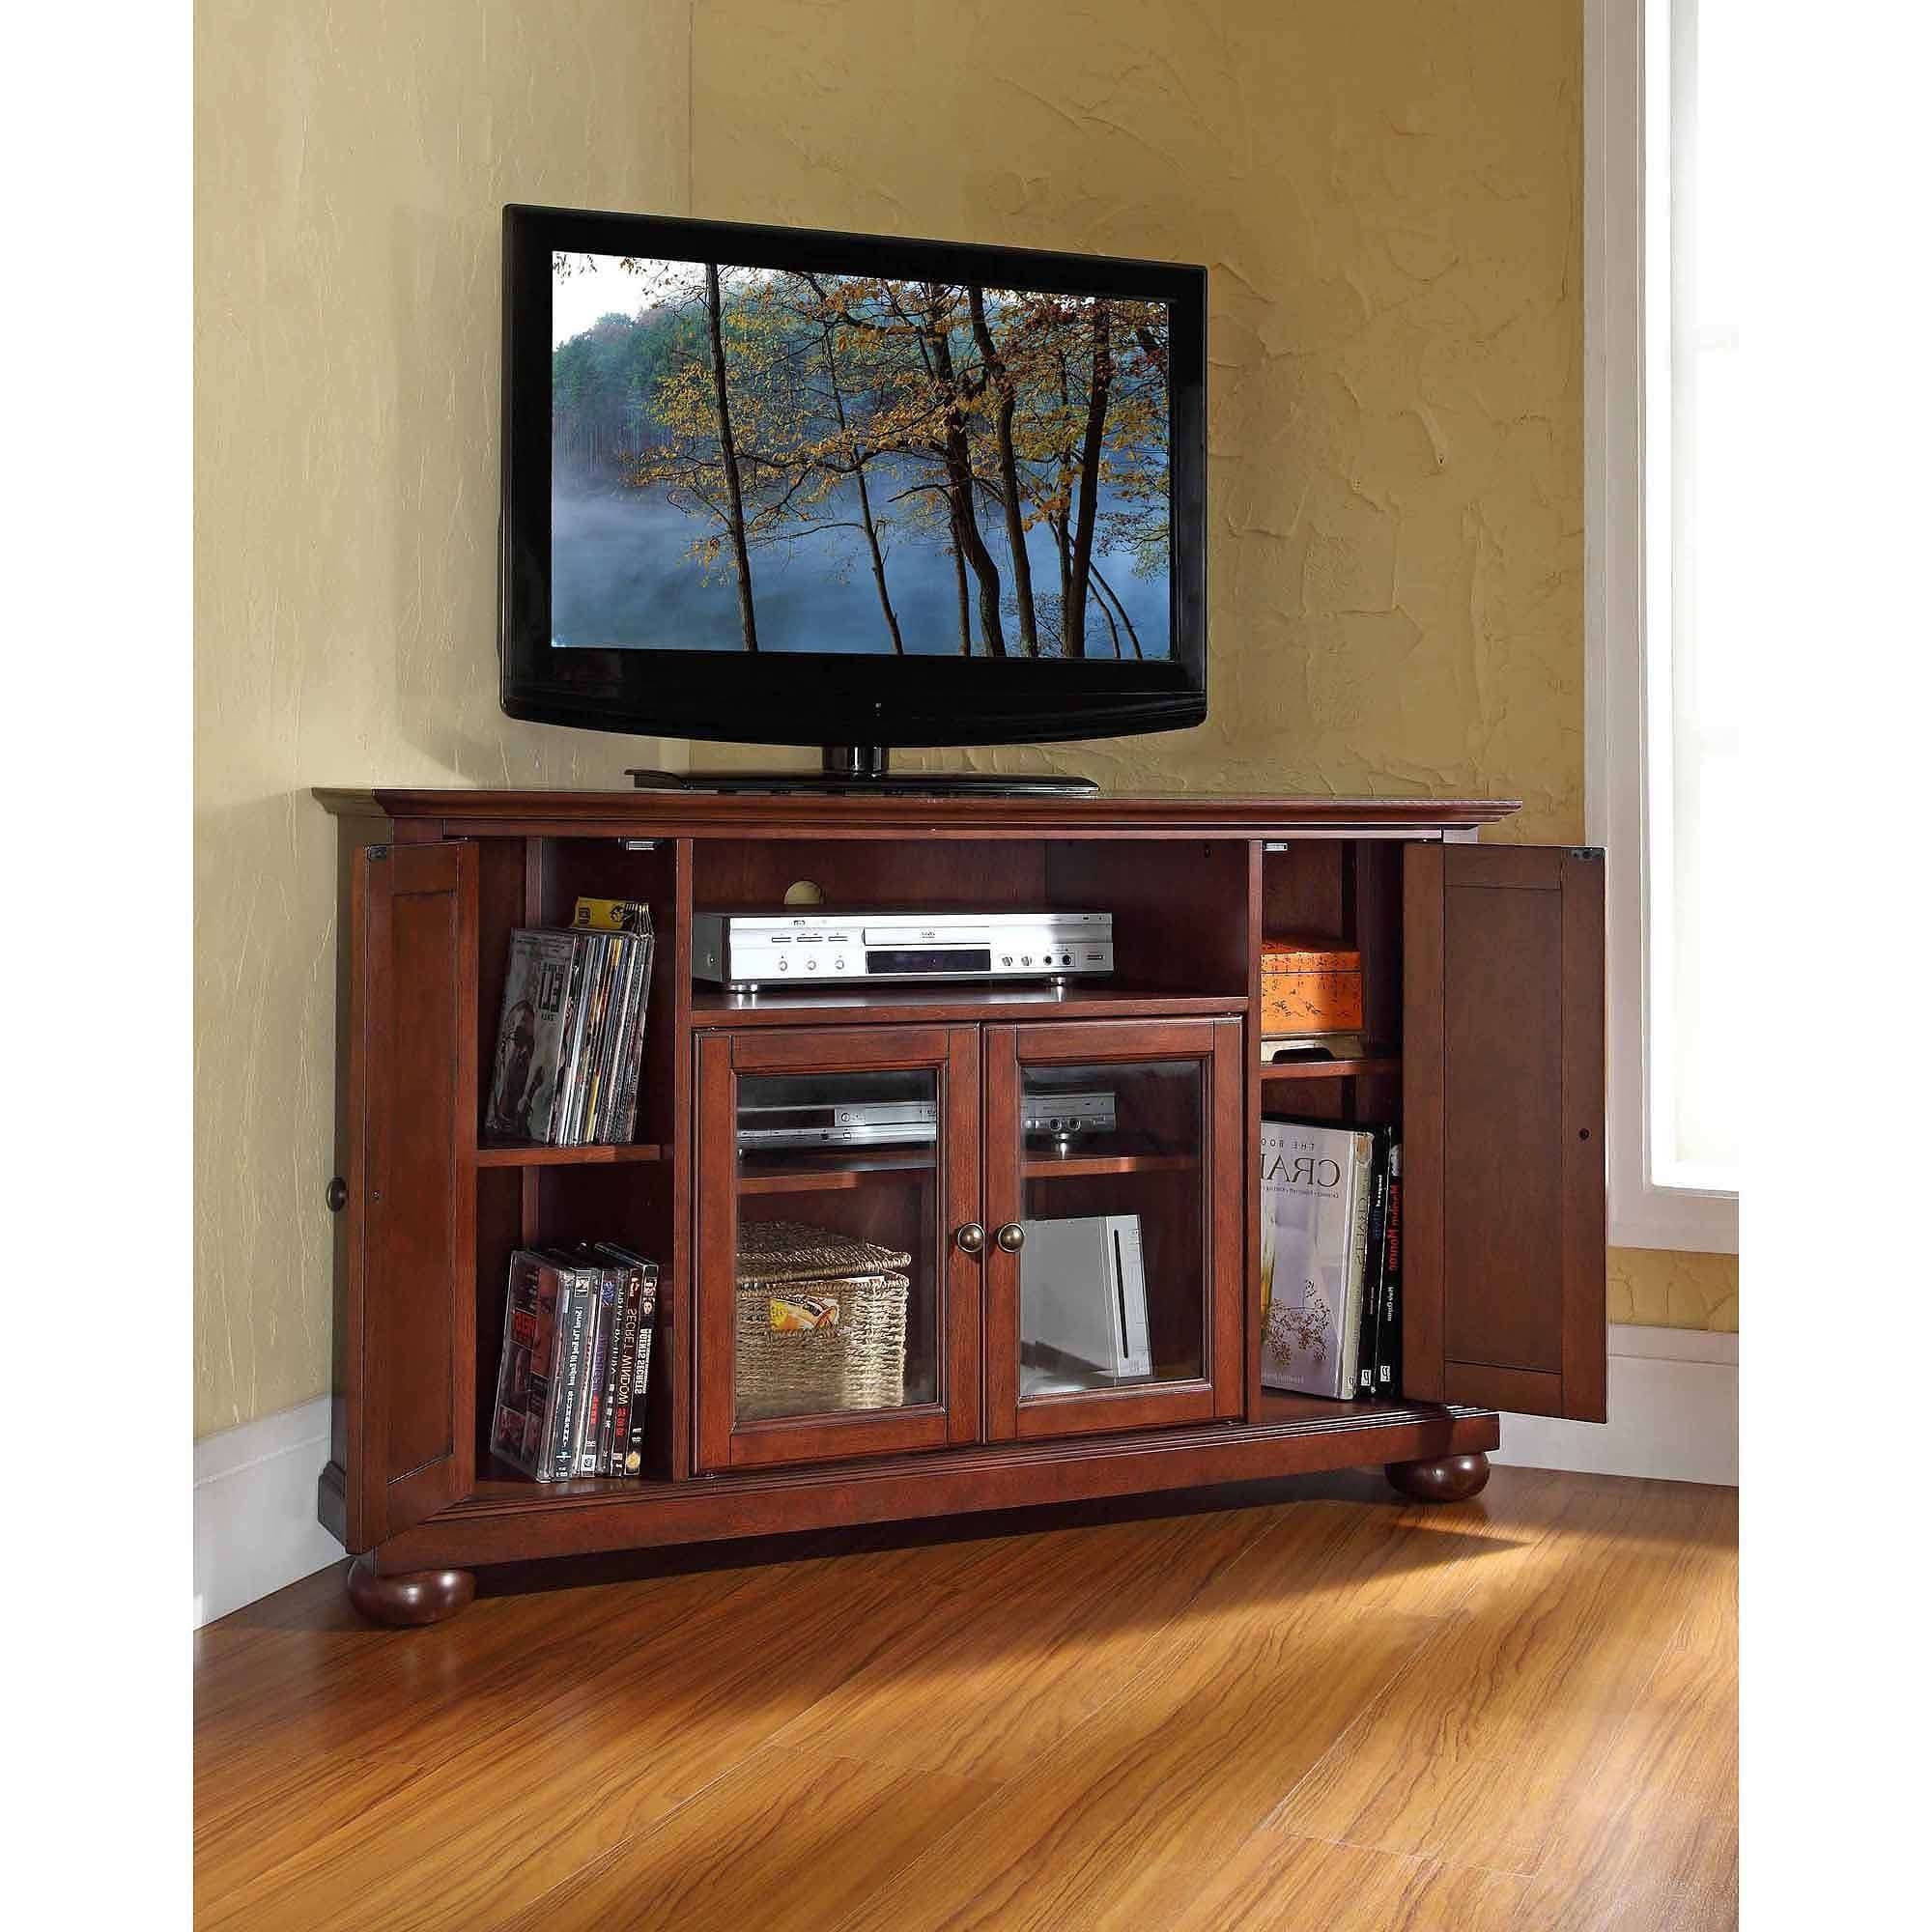 Tv Stand : Tv Stand Corner 70420208Fbe0 1 Largeireplace Standtv In Flat Screen Tv Stands Corner Units (View 17 of 20)